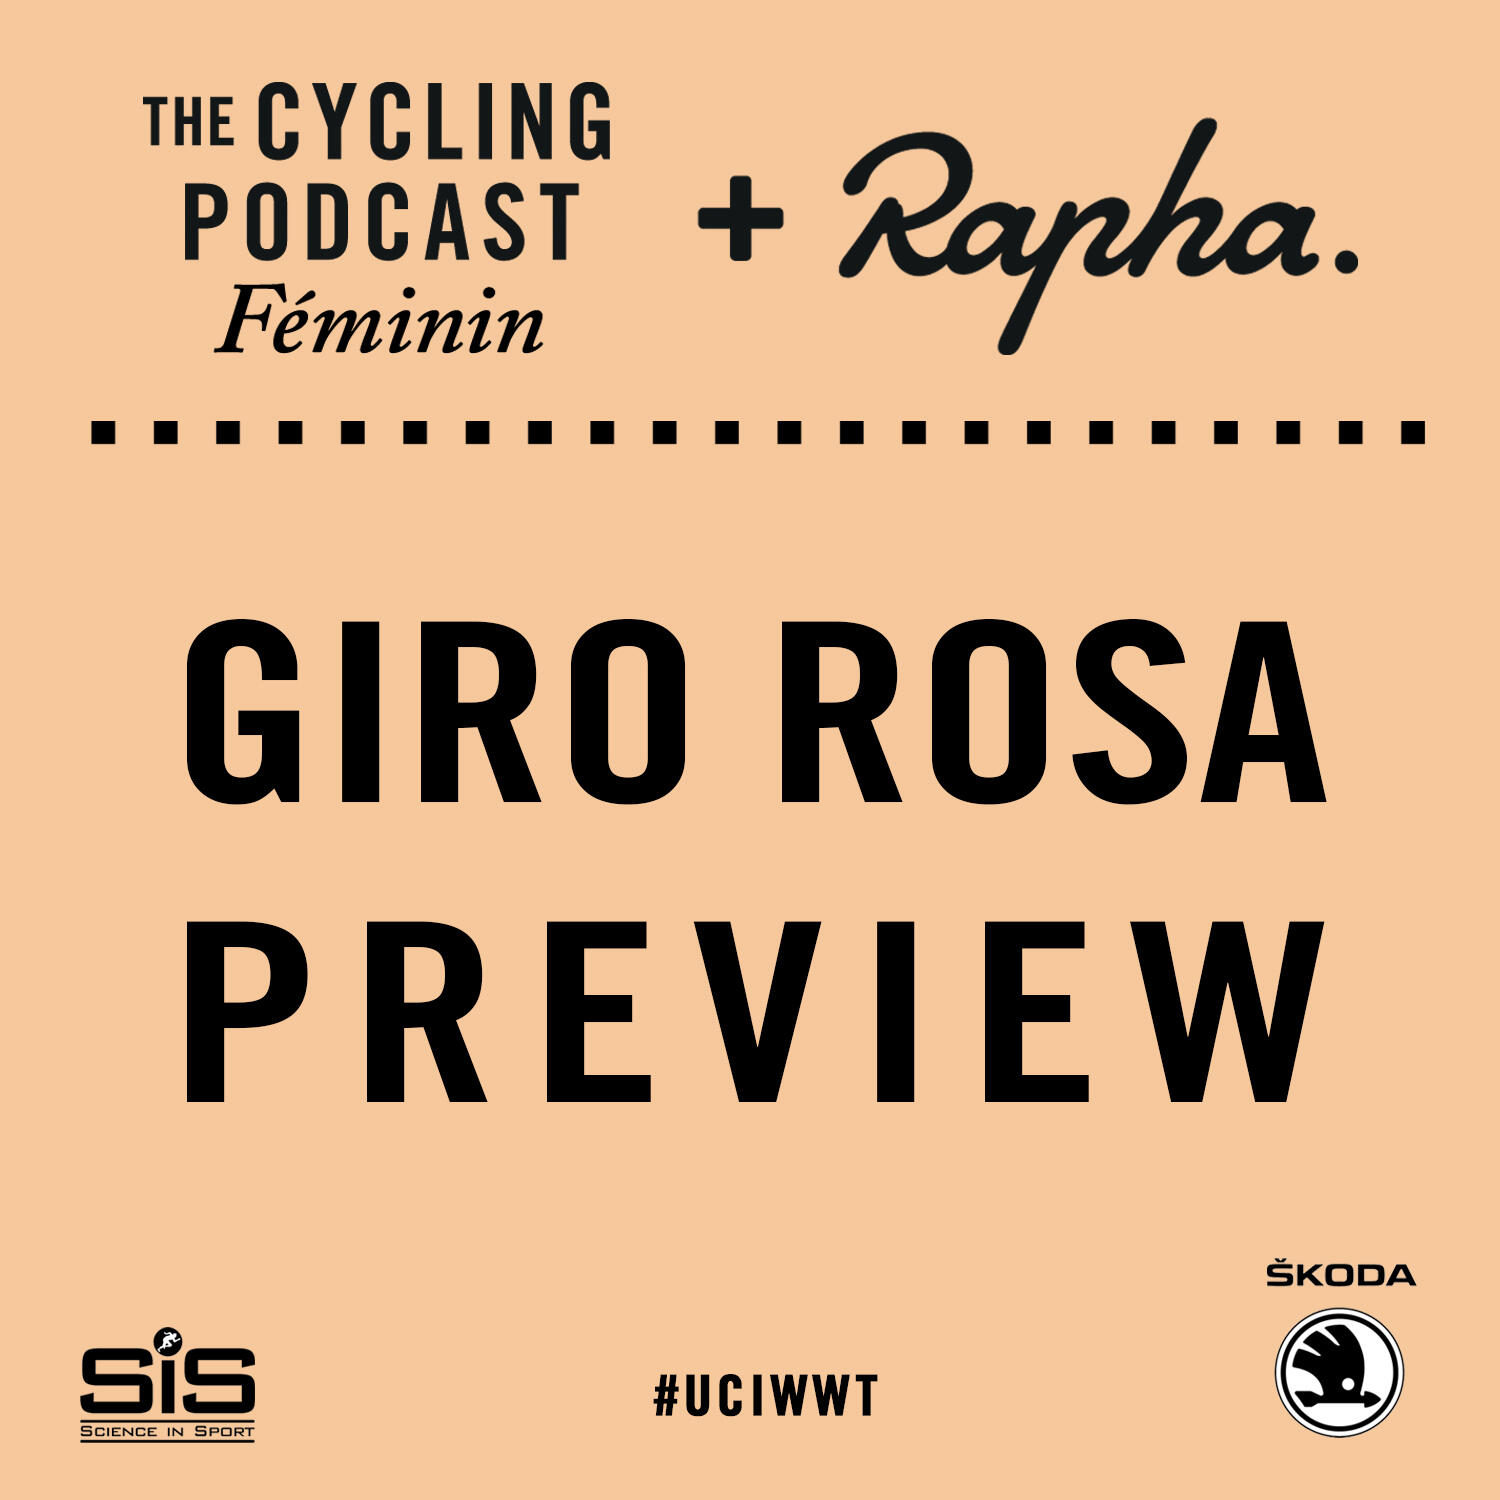 78: The Cycling Podcast Féminin | Giro Rosa Preview